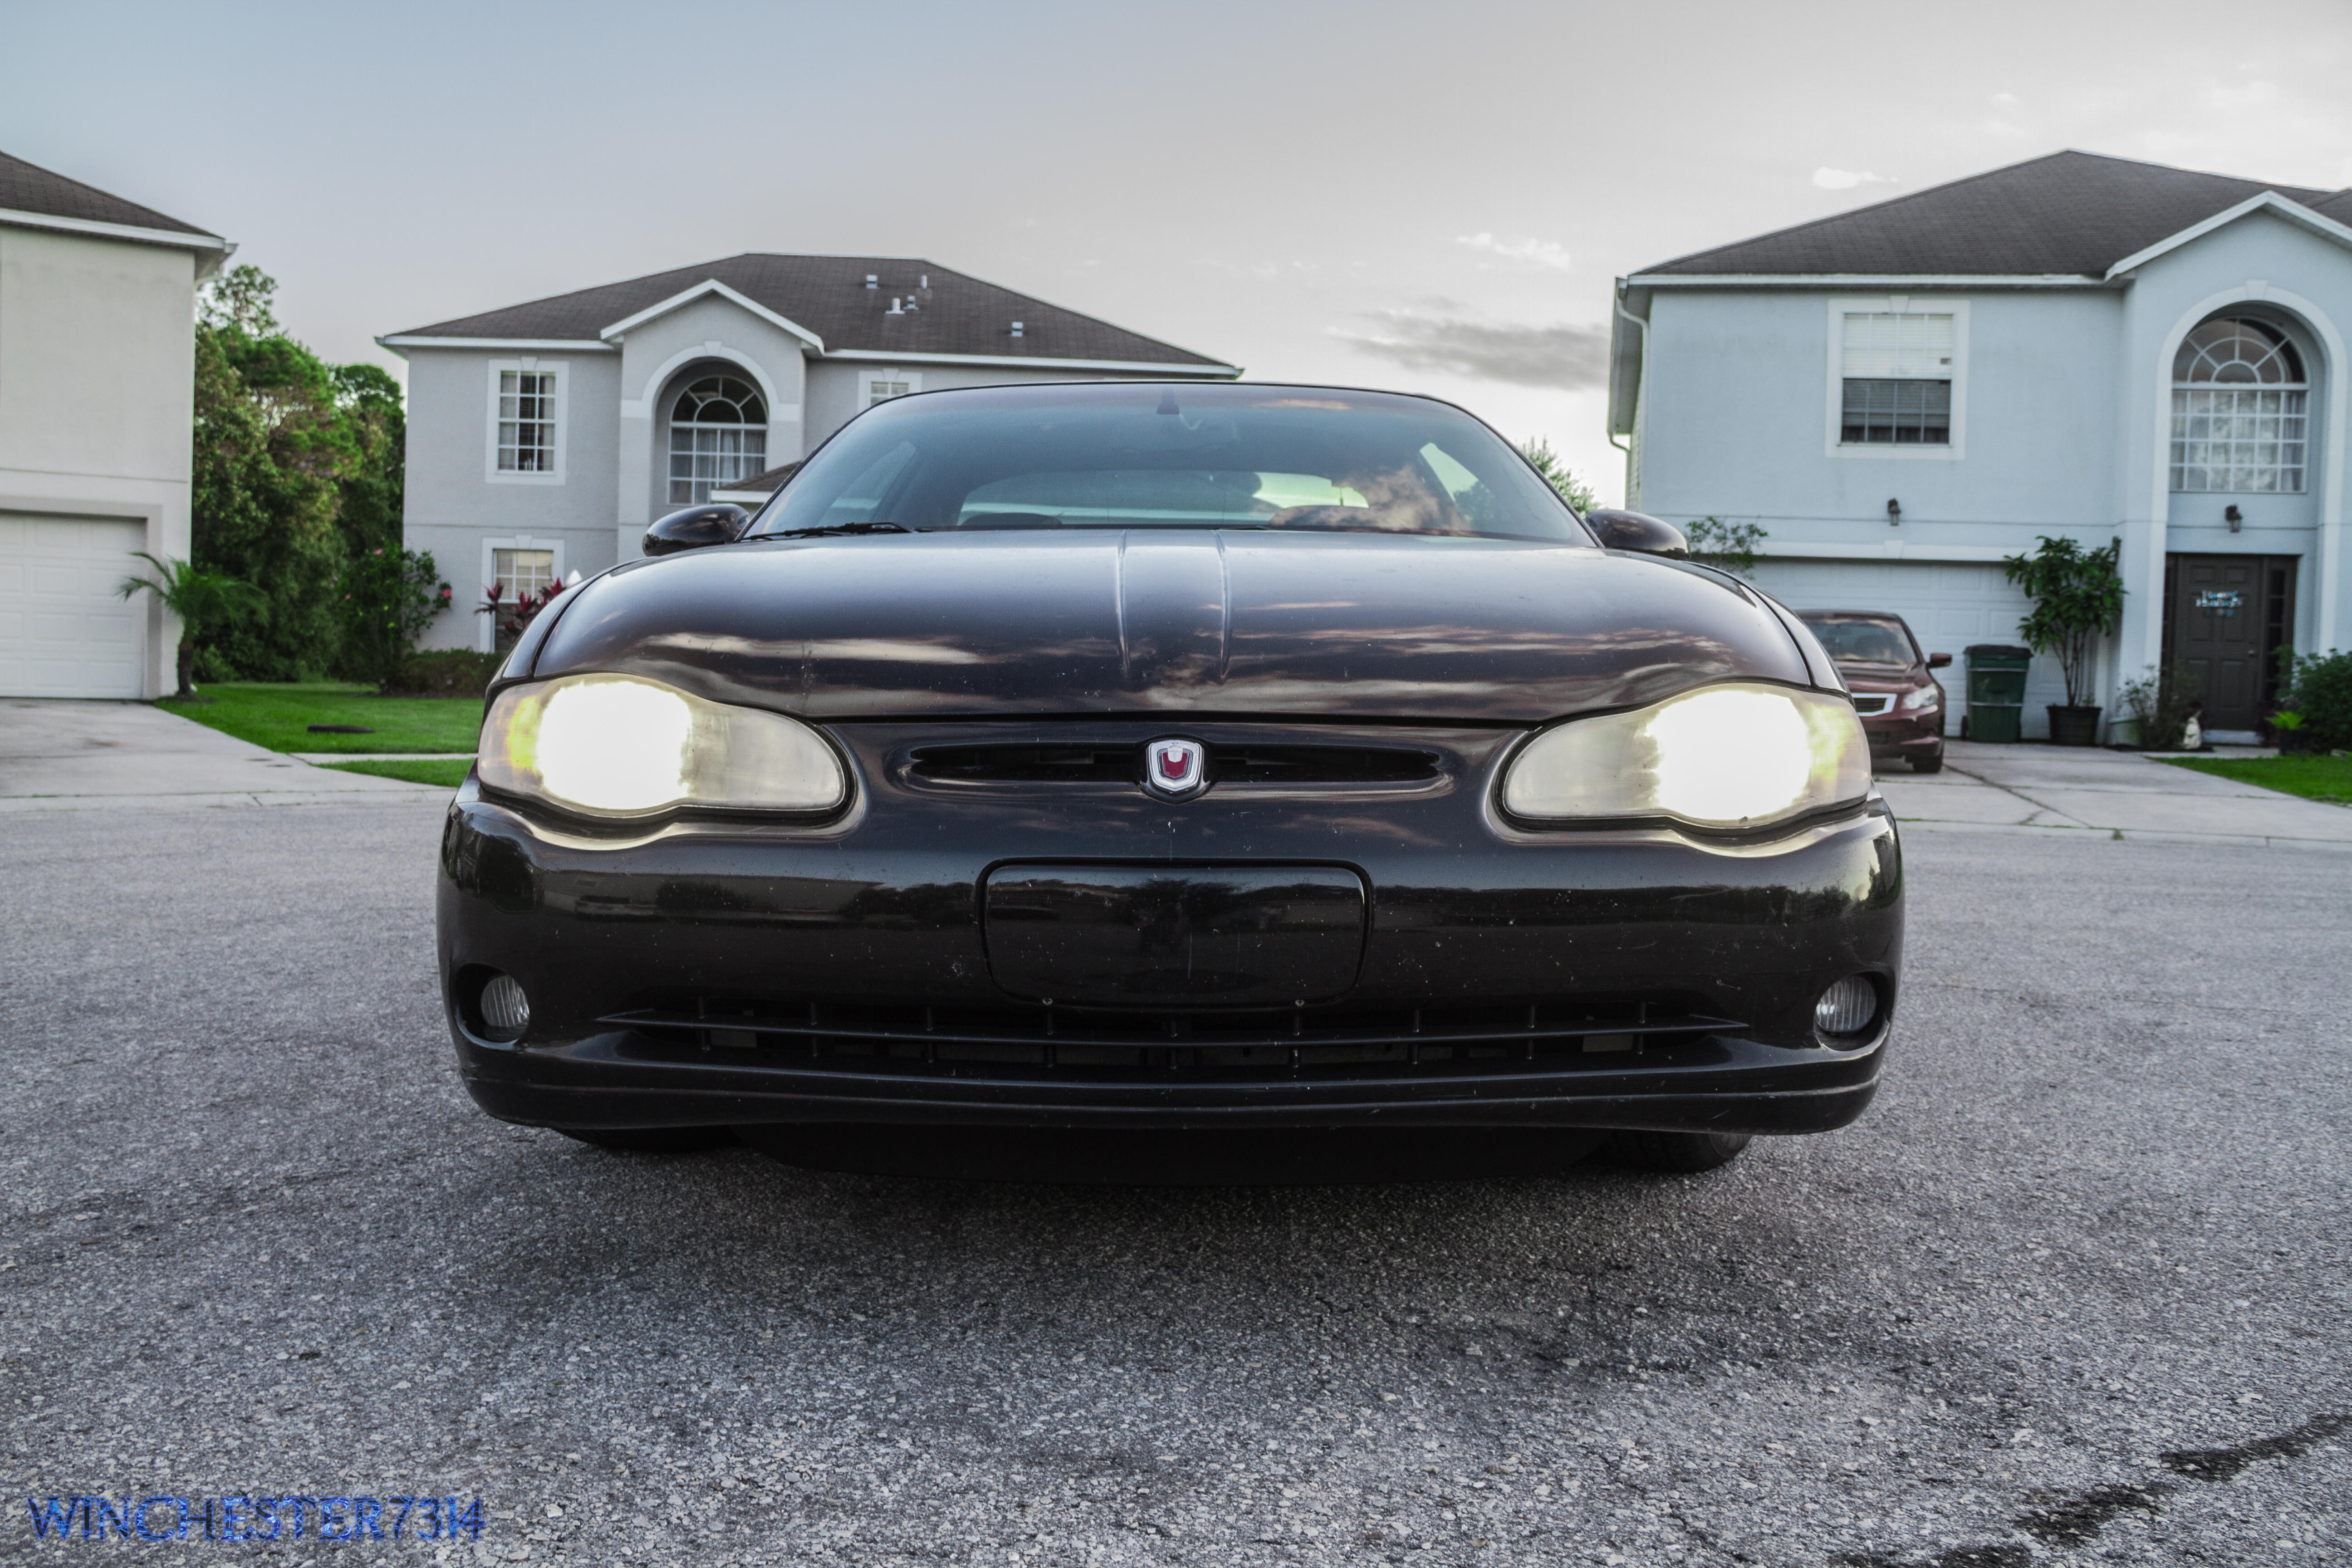 My 2001 Monte Carlo SS by Winchester7314 on DeviantArt